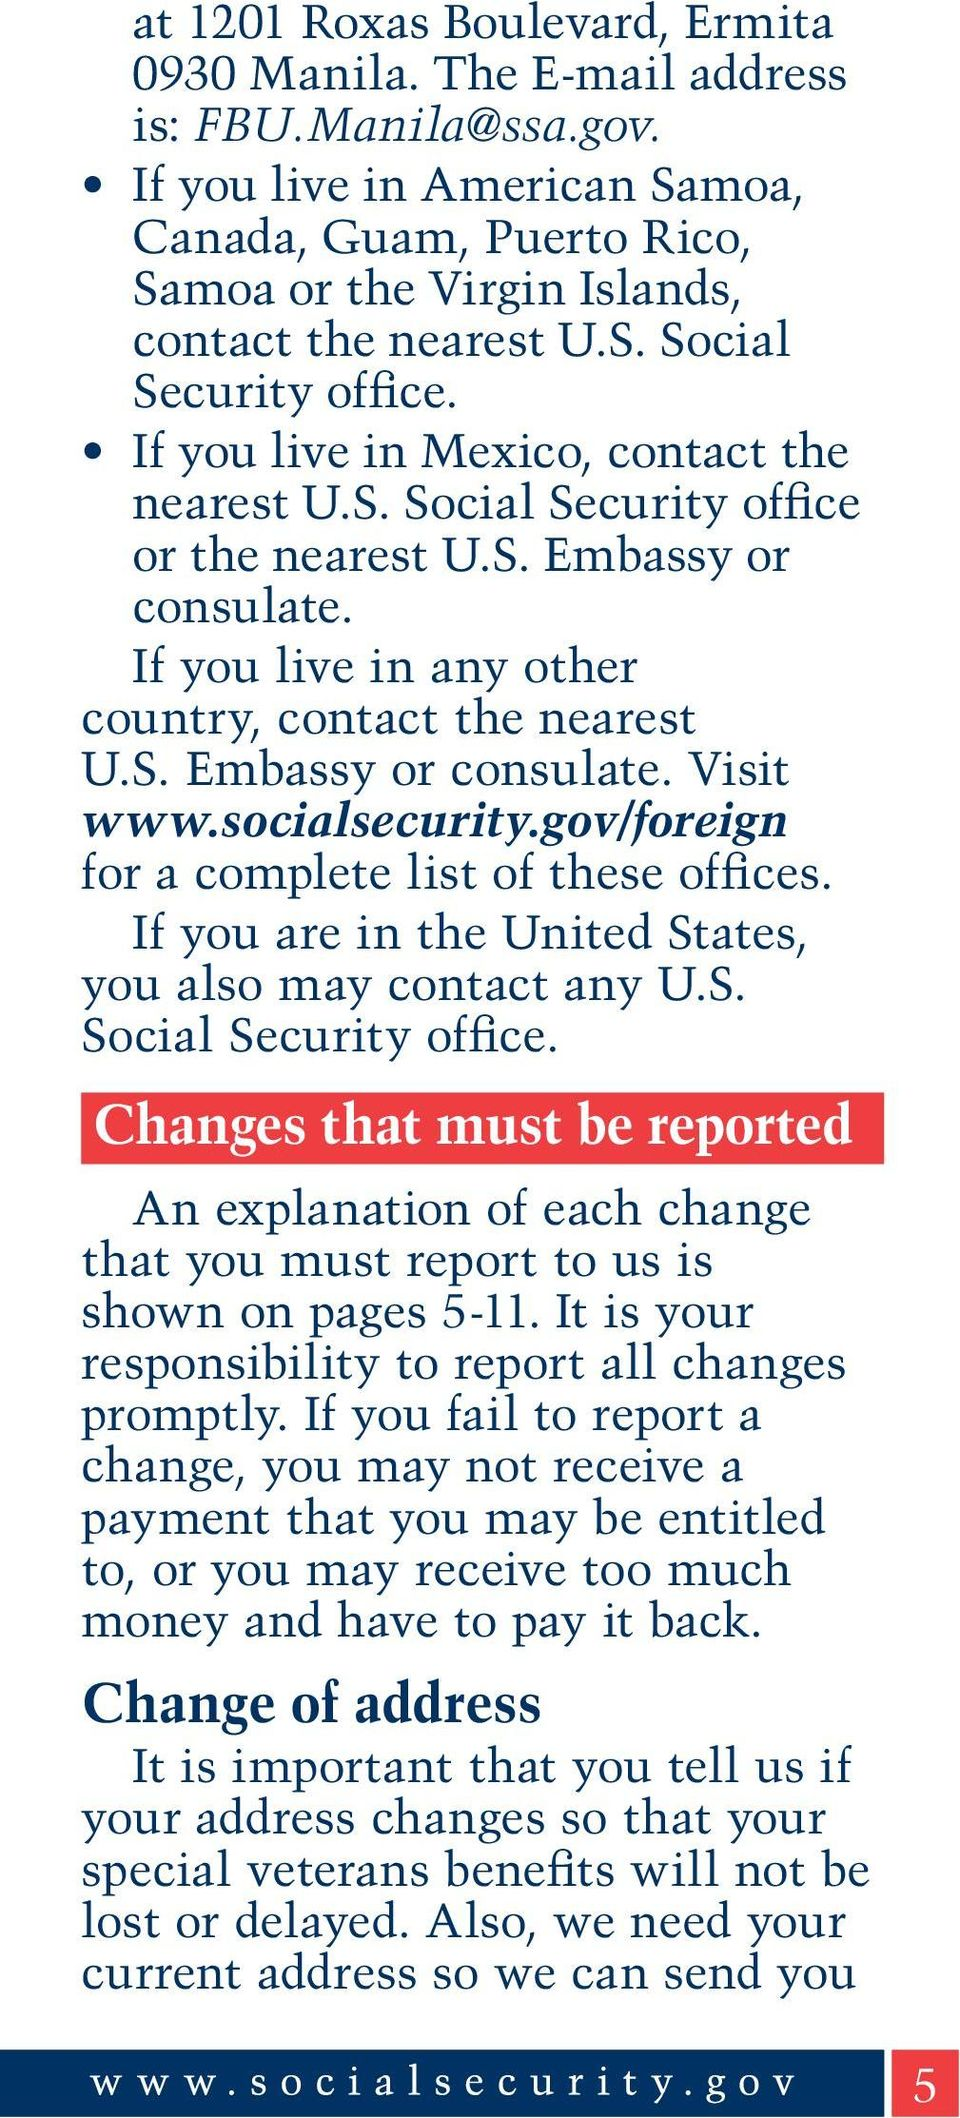 socialsecurity.gov/foreign for a complete list of these offices. If you are in the United States, you also may contact any U.S. Social Security office.